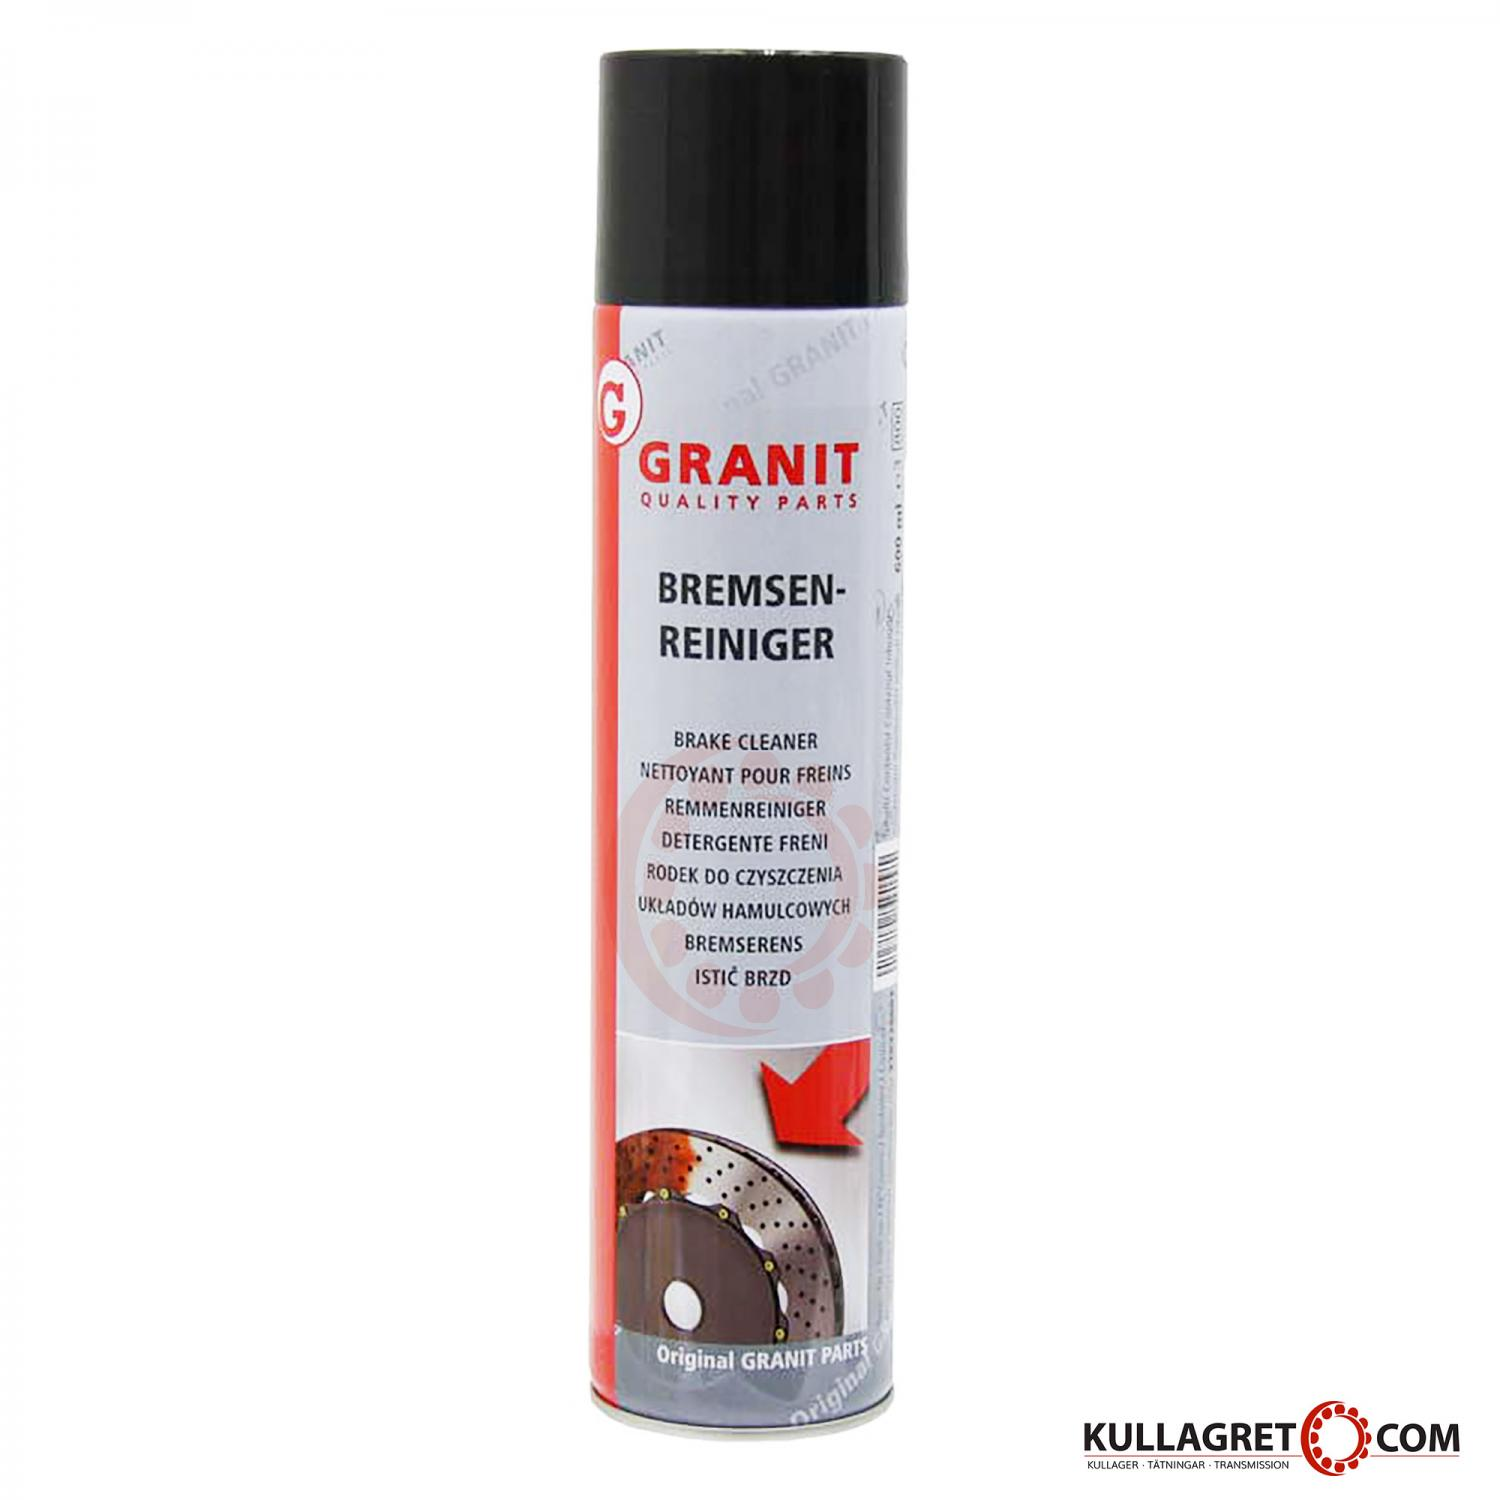 Granit BRAKE CLEANER (Bremsenreiniger) 600ml